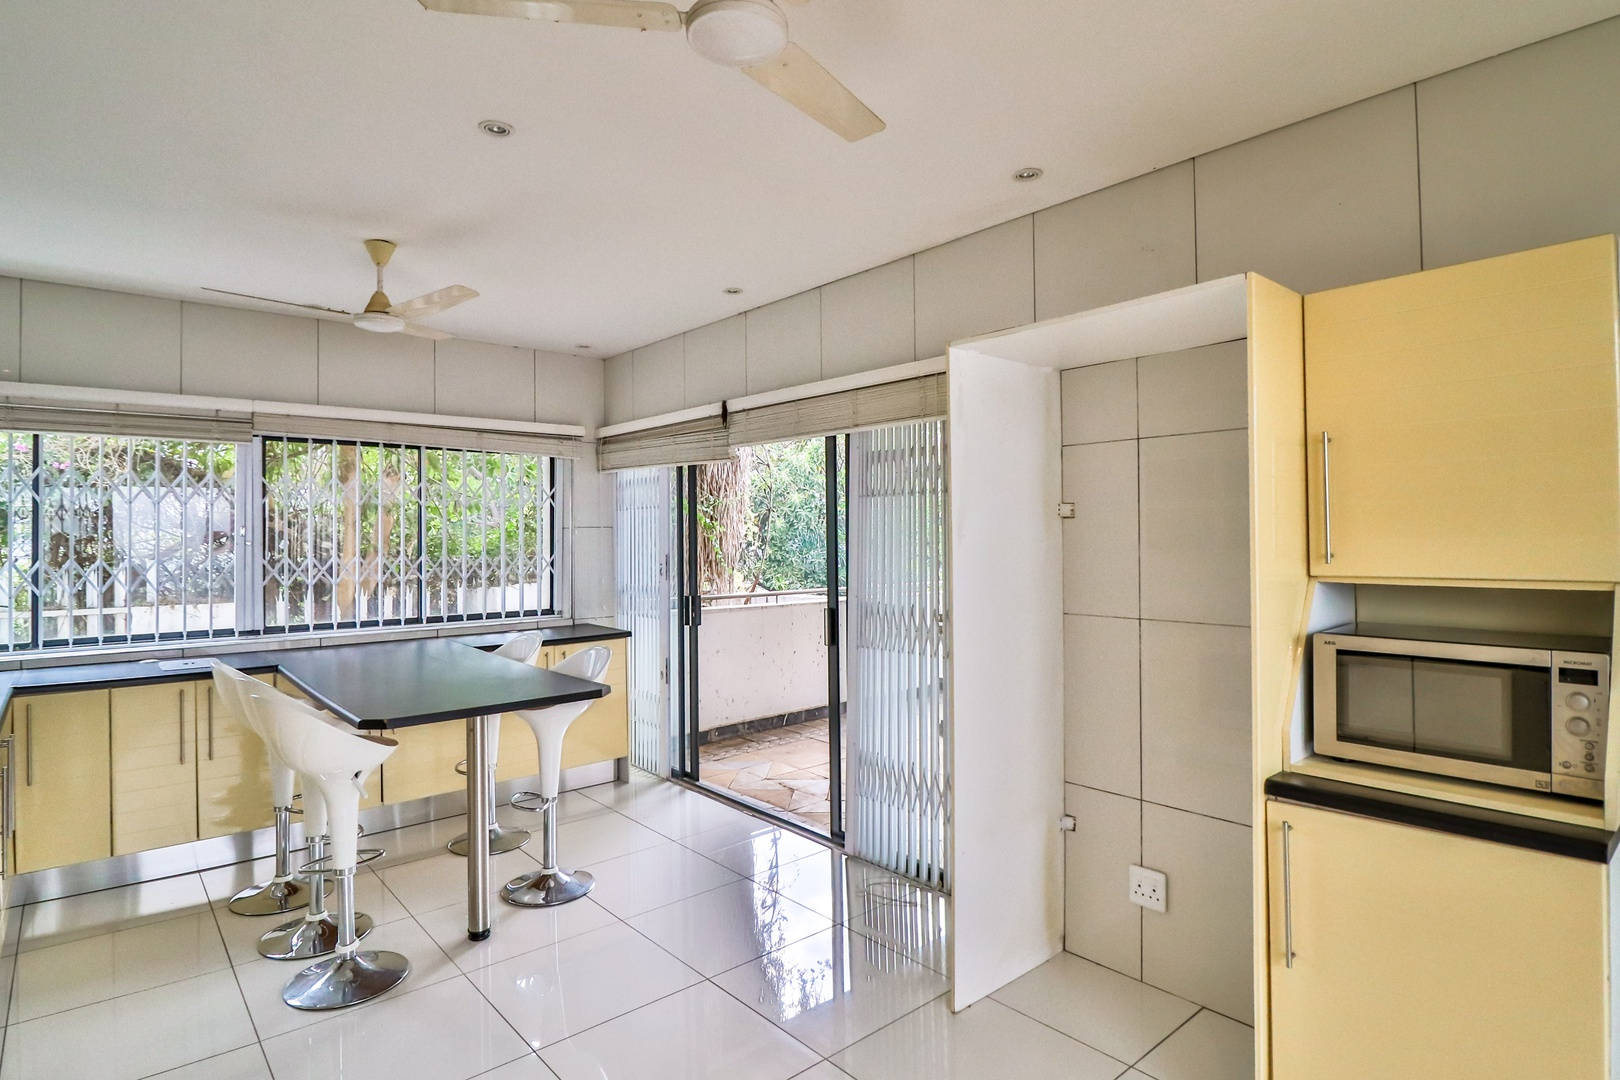 House in Kosmos Village - Flat kitchen and dining area